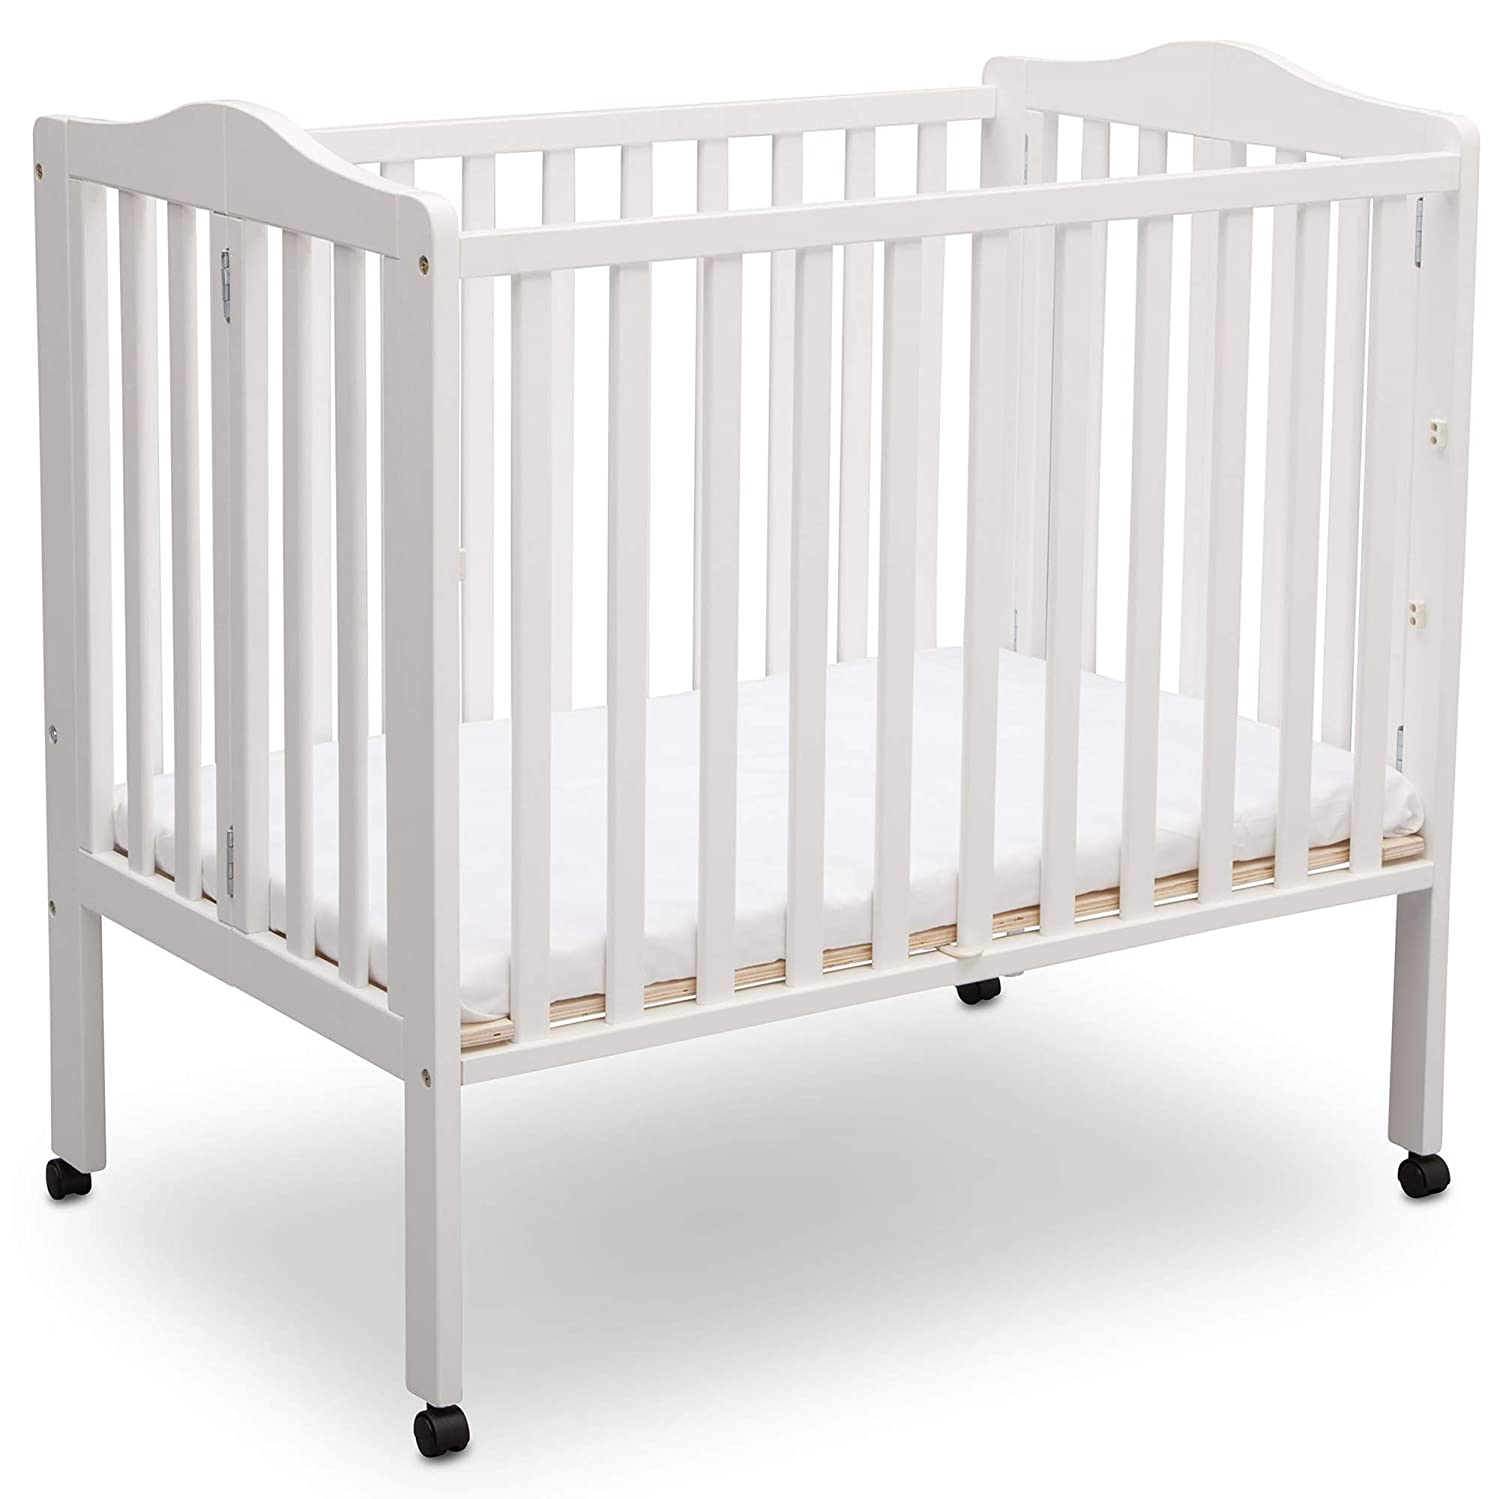 Amazon.com : Delta Children Delta Children Folding Portable Mini Baby Crib with Mattress, Dark Espresso, Dark Espresso : Baby